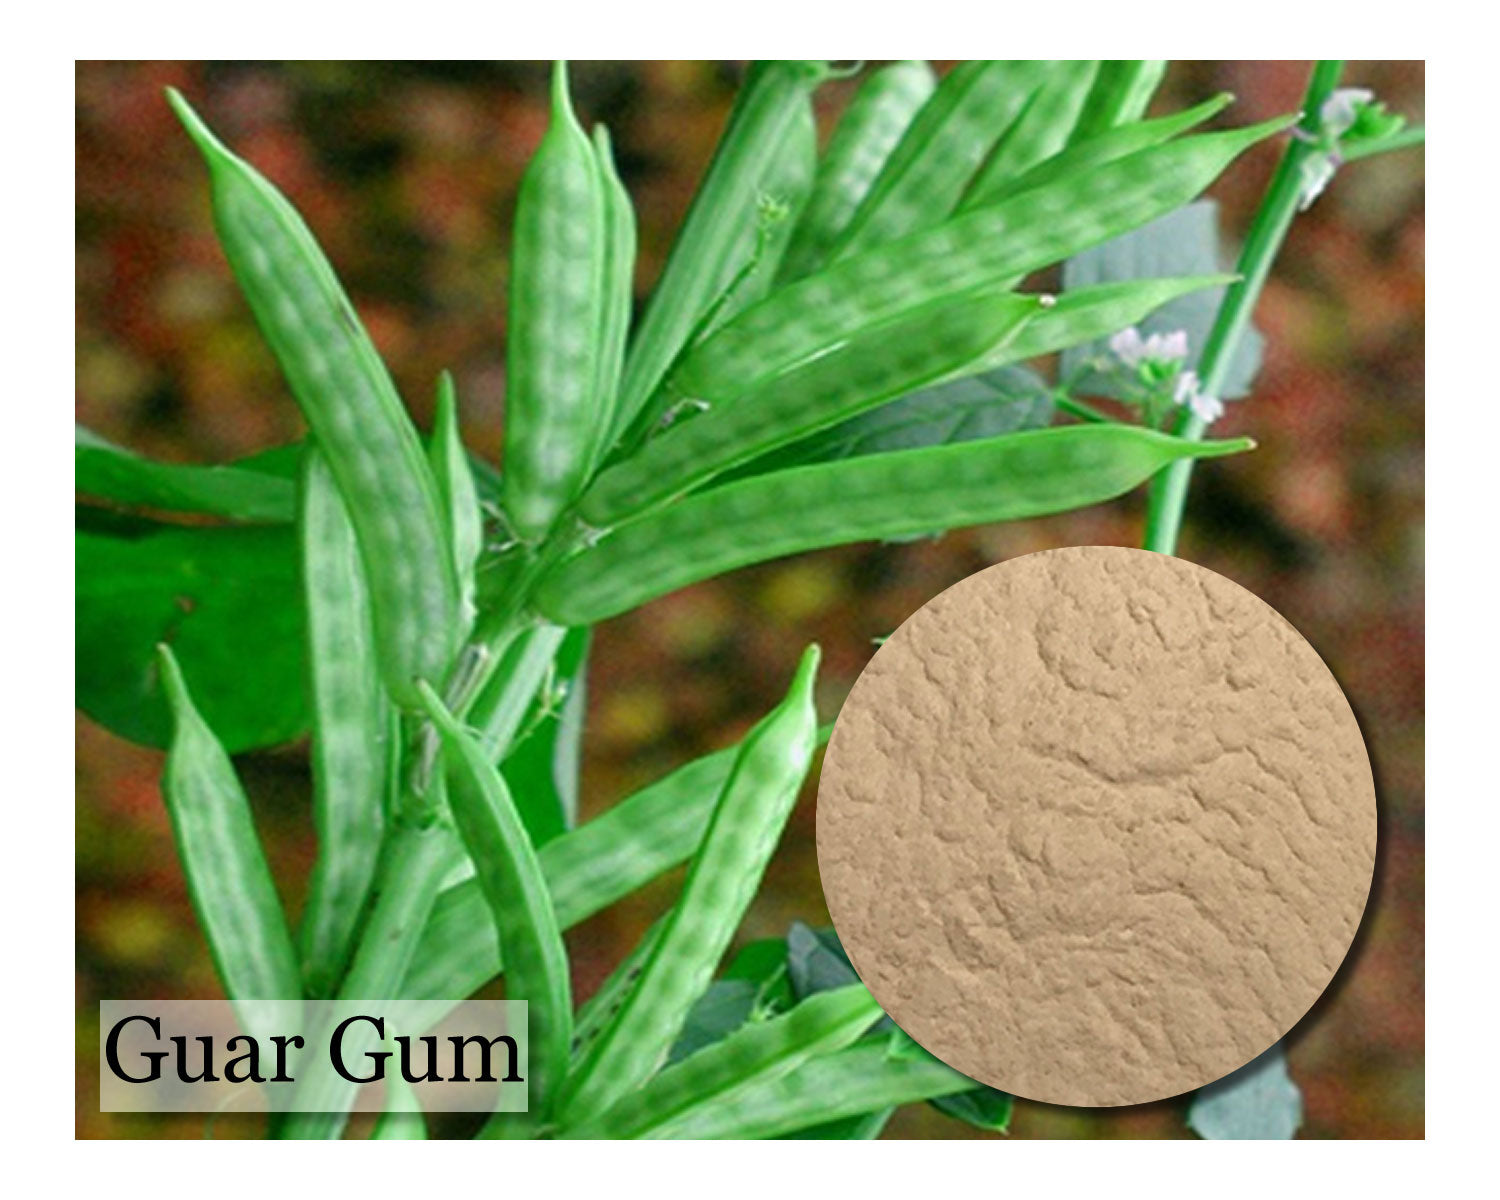 Guar Gum Powder - 4 oz